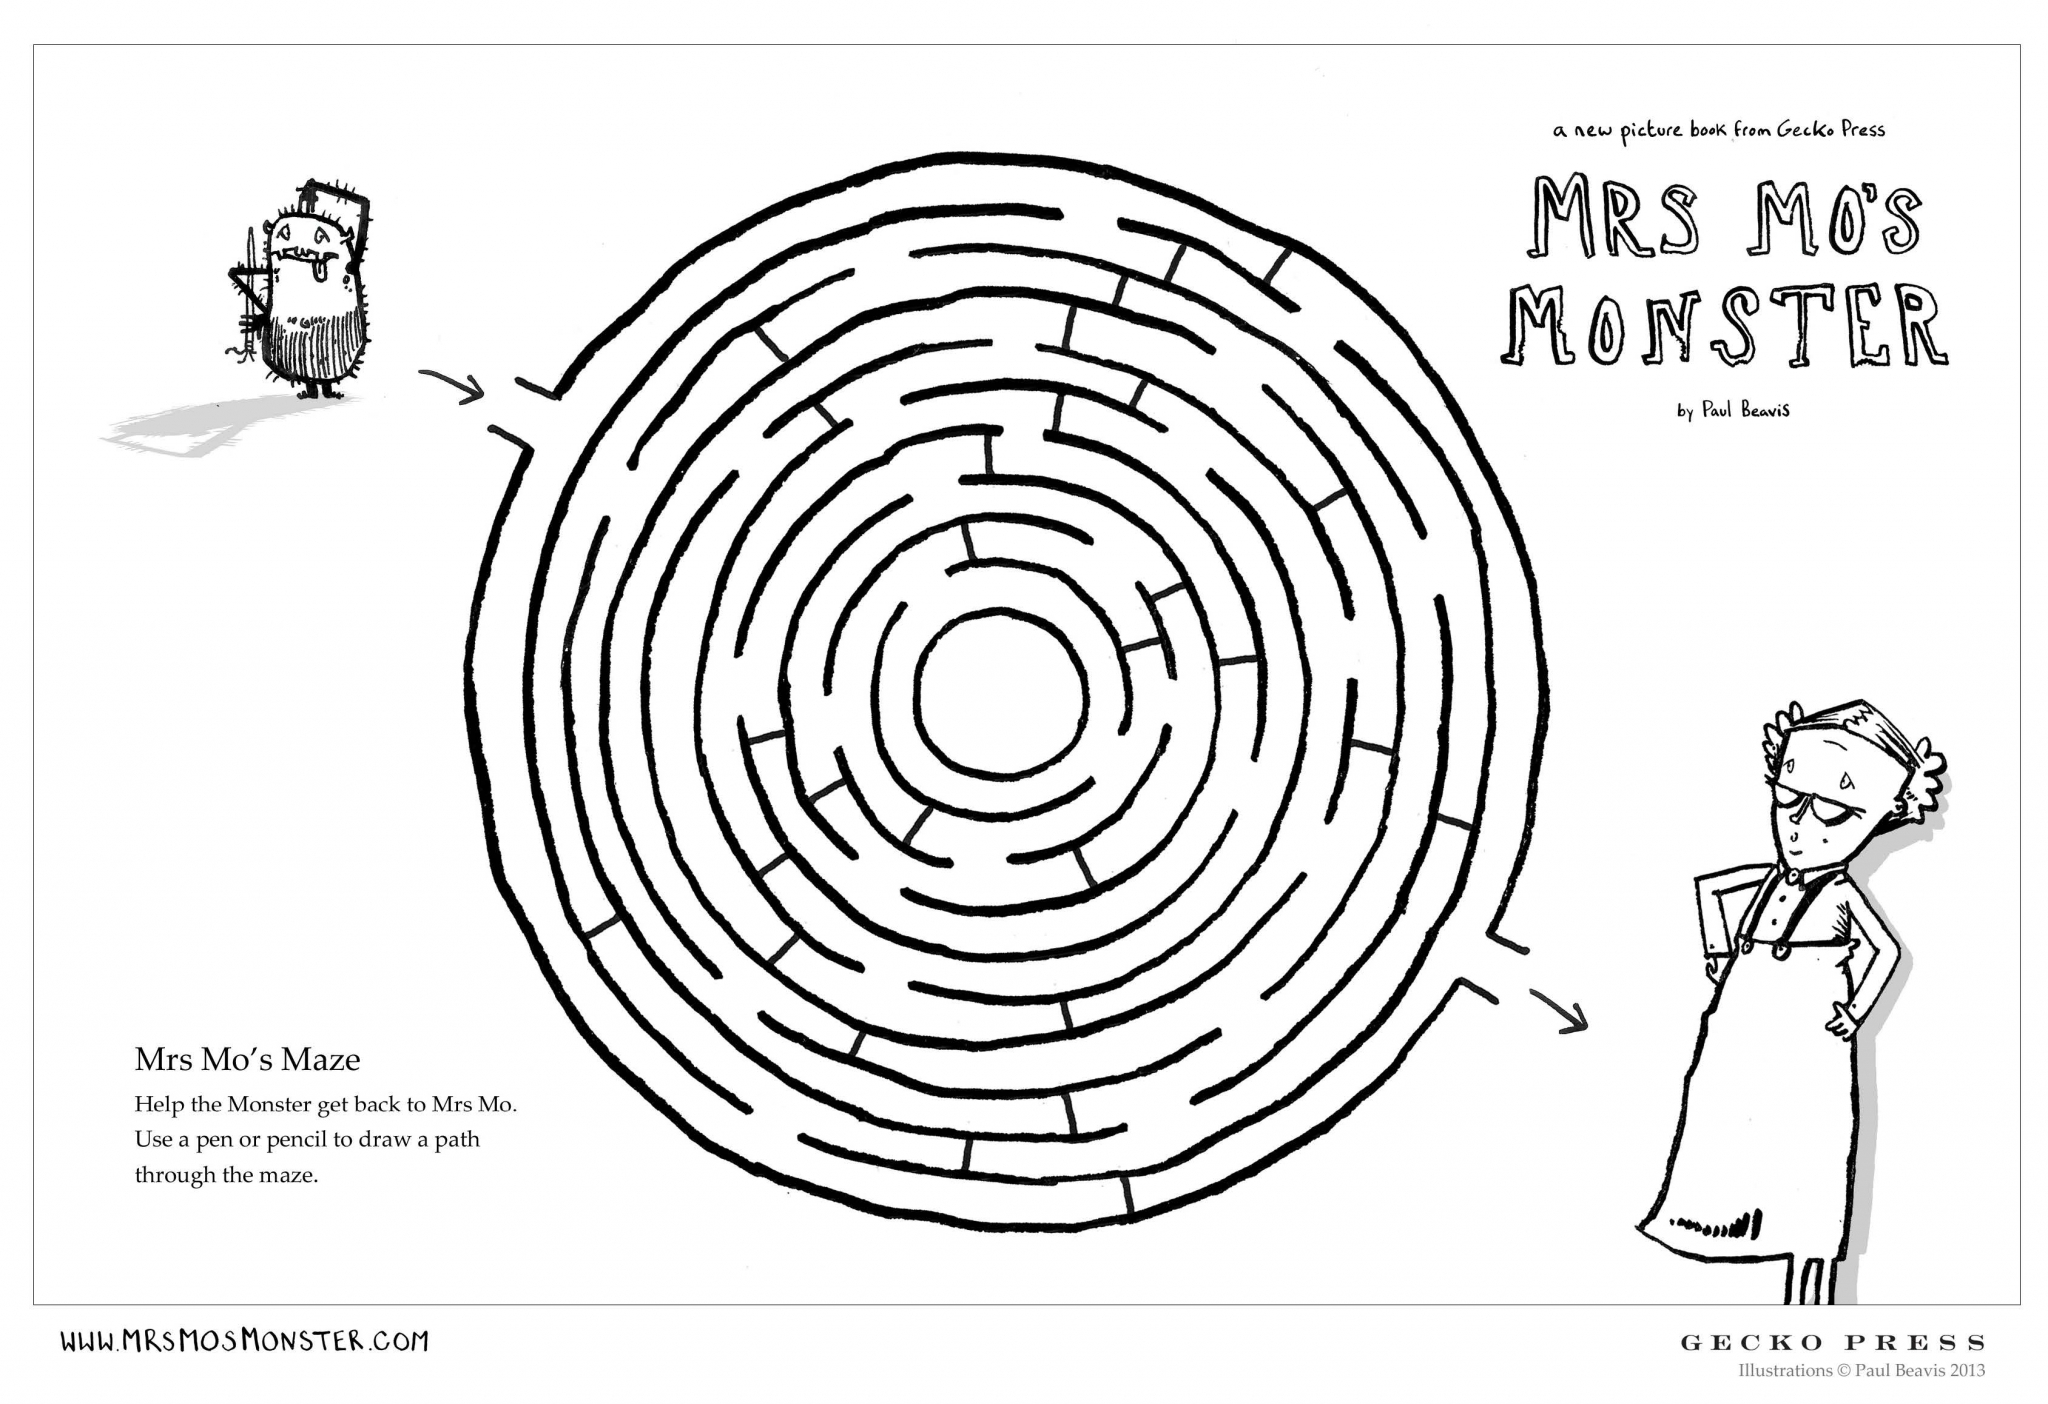 Gecko Press activity sheet for Mrs Mos Monster, make it thorugh the maze